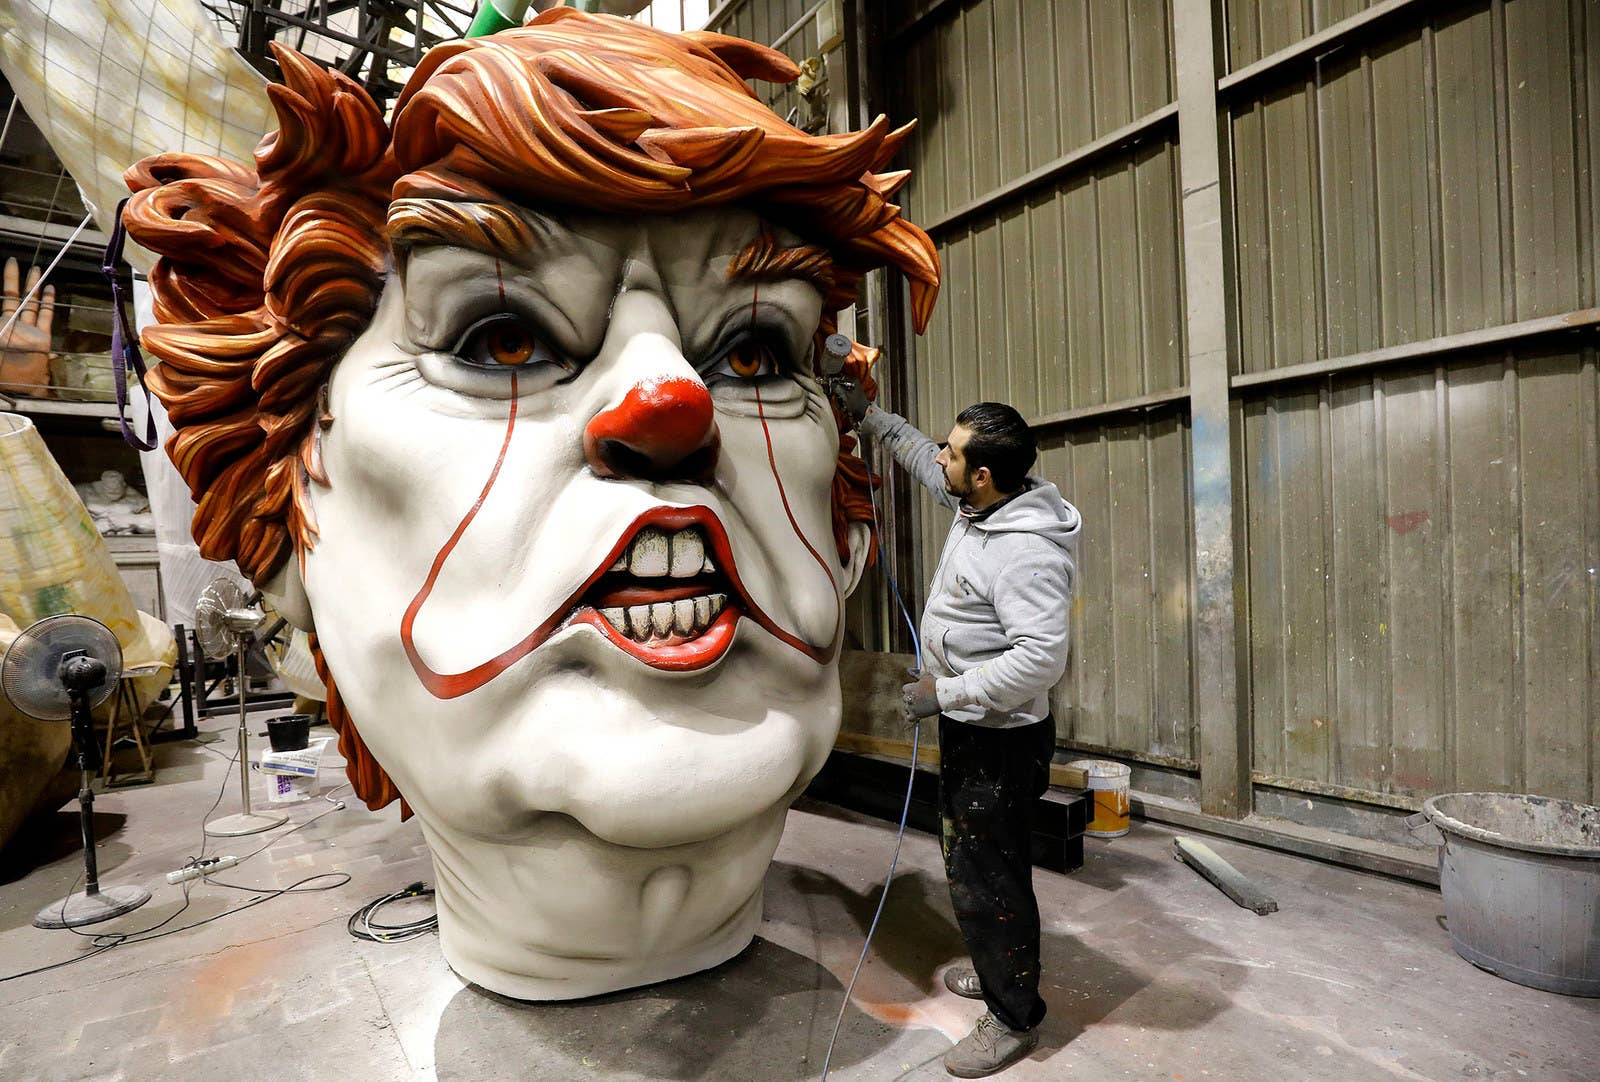 A worker gives final touches to a carnival float character depicting President Donald Trump during preparations of the 2019 Nice Carnival, in Nice, France, on Feb. 5.